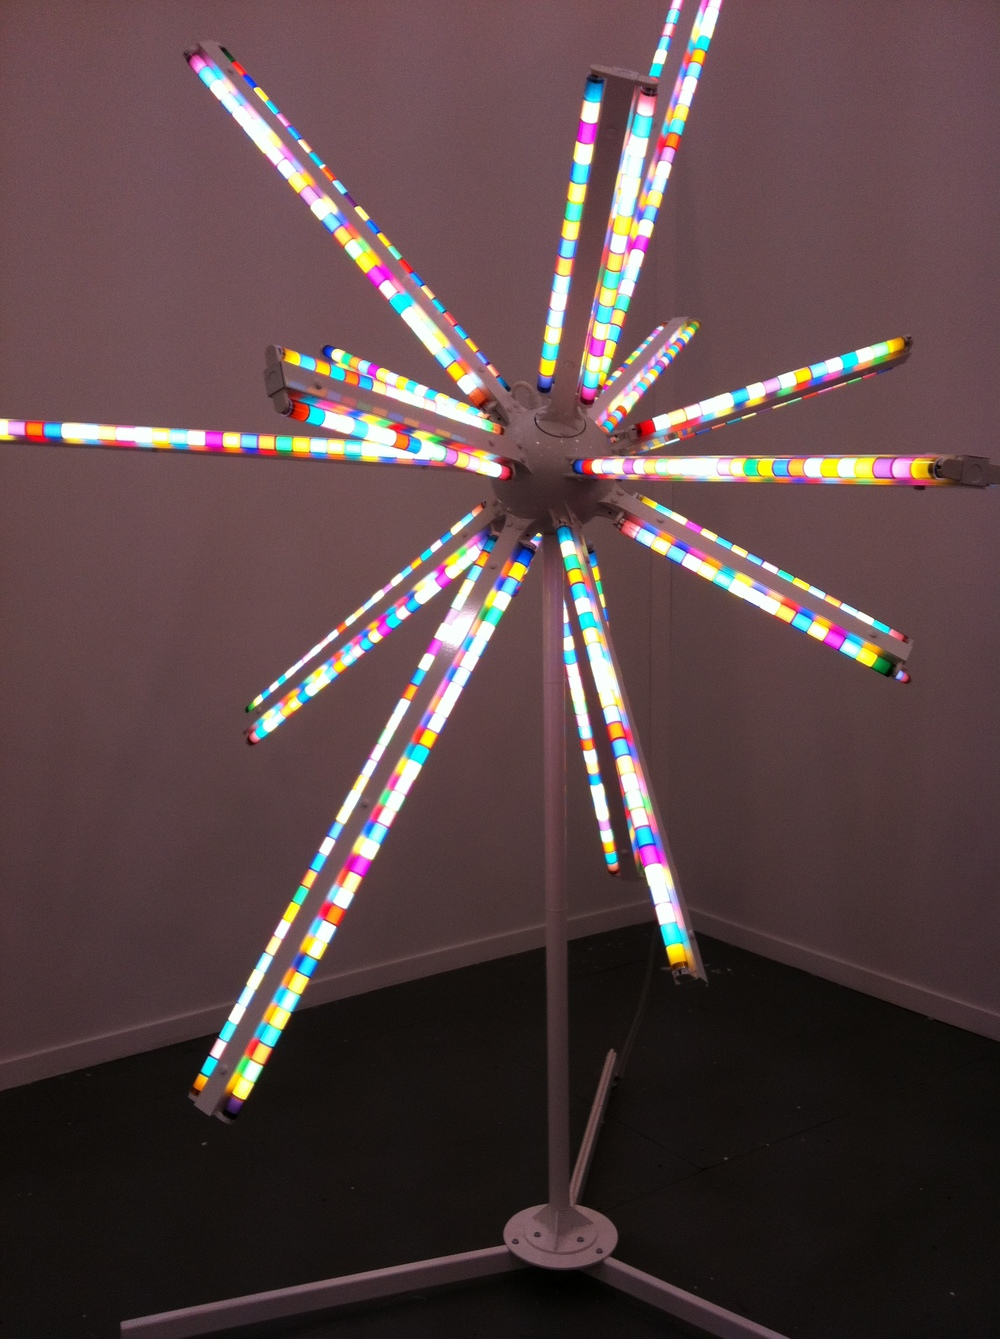 Spence Finch LED sculpture with James Cohan Gallery. Can you see a trend back to the sputnik?